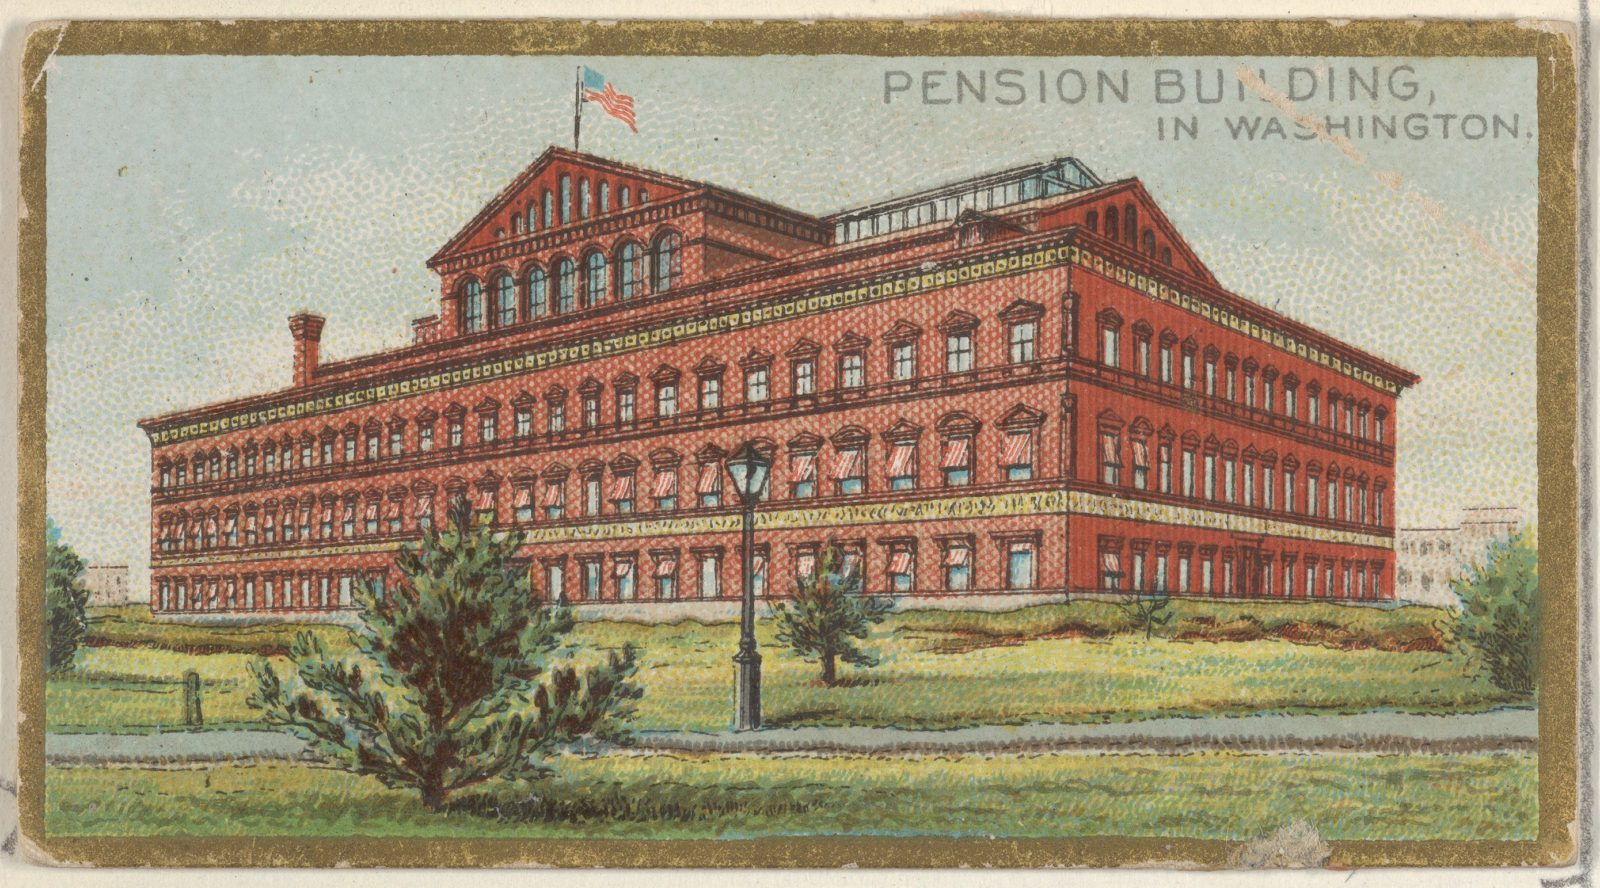 Pension Building in Washington, from the General Government and State Capitol Buildings series (N14) for Allen & Ginter Cigarettes Brands